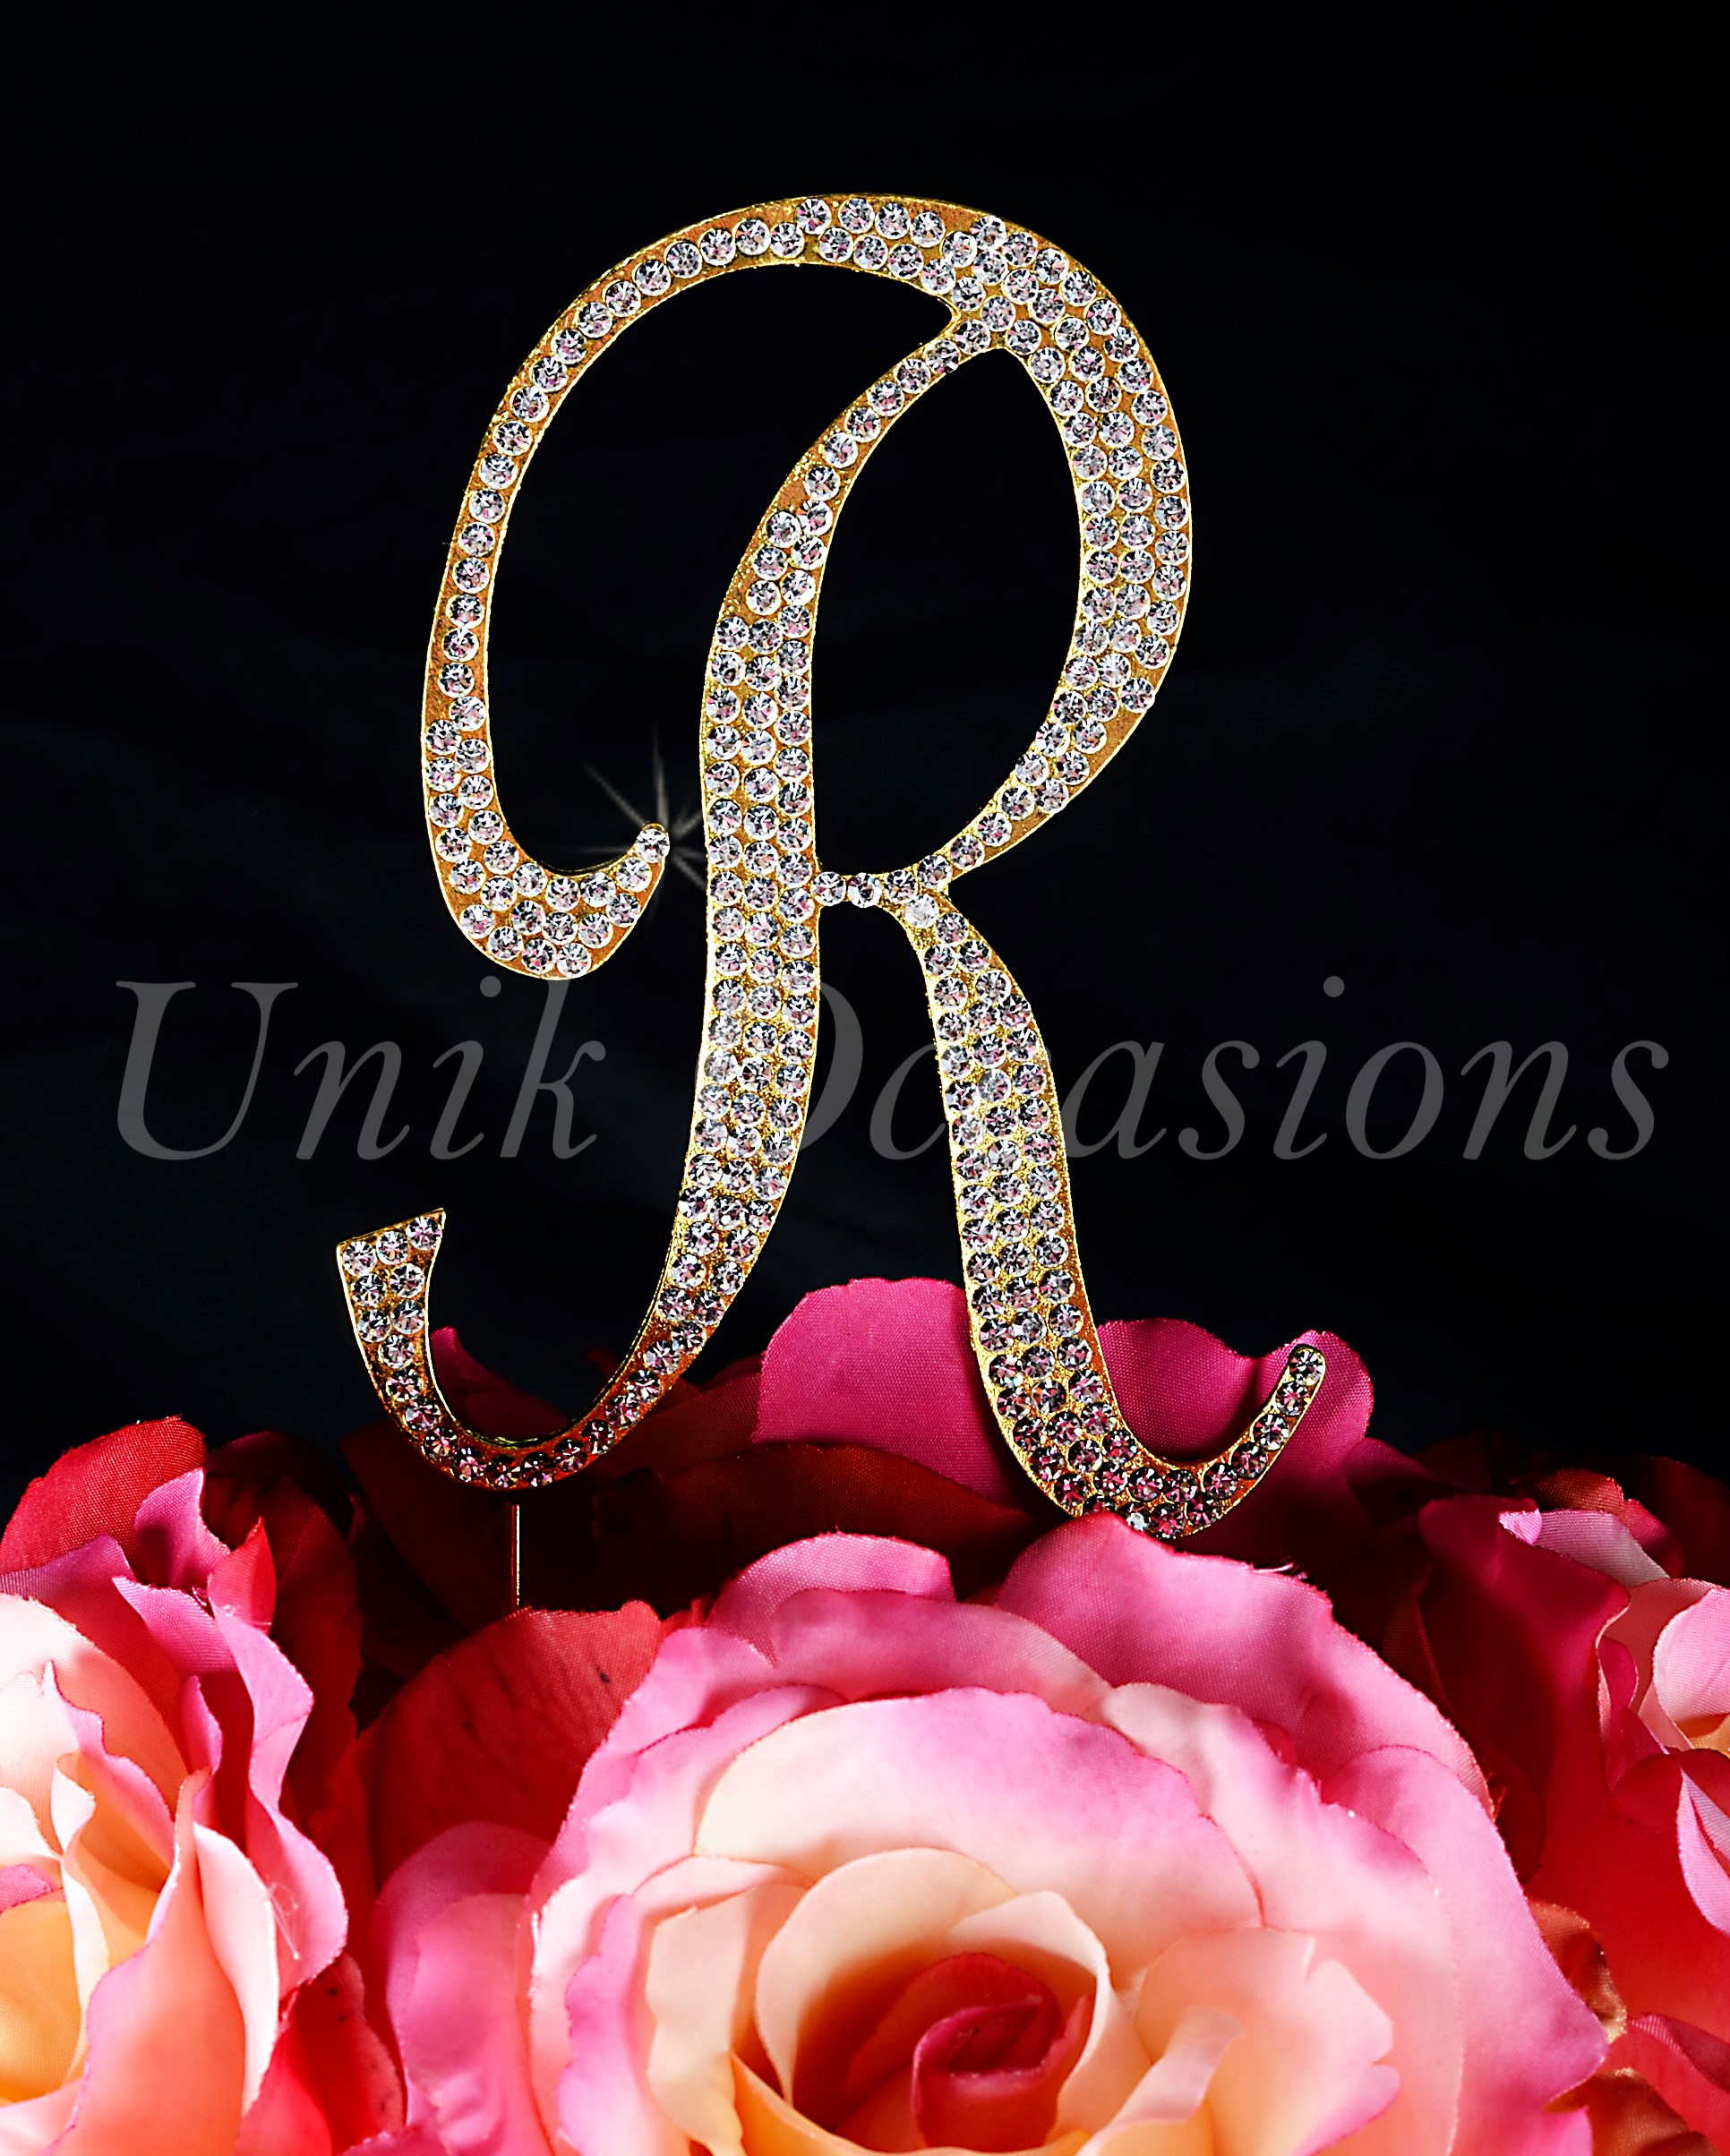 Unik occasions sparkling collection crystal rhinestone monogram unik occasions sparkling collection crystal rhinestone monogram cake topper letter r altavistaventures Image collections